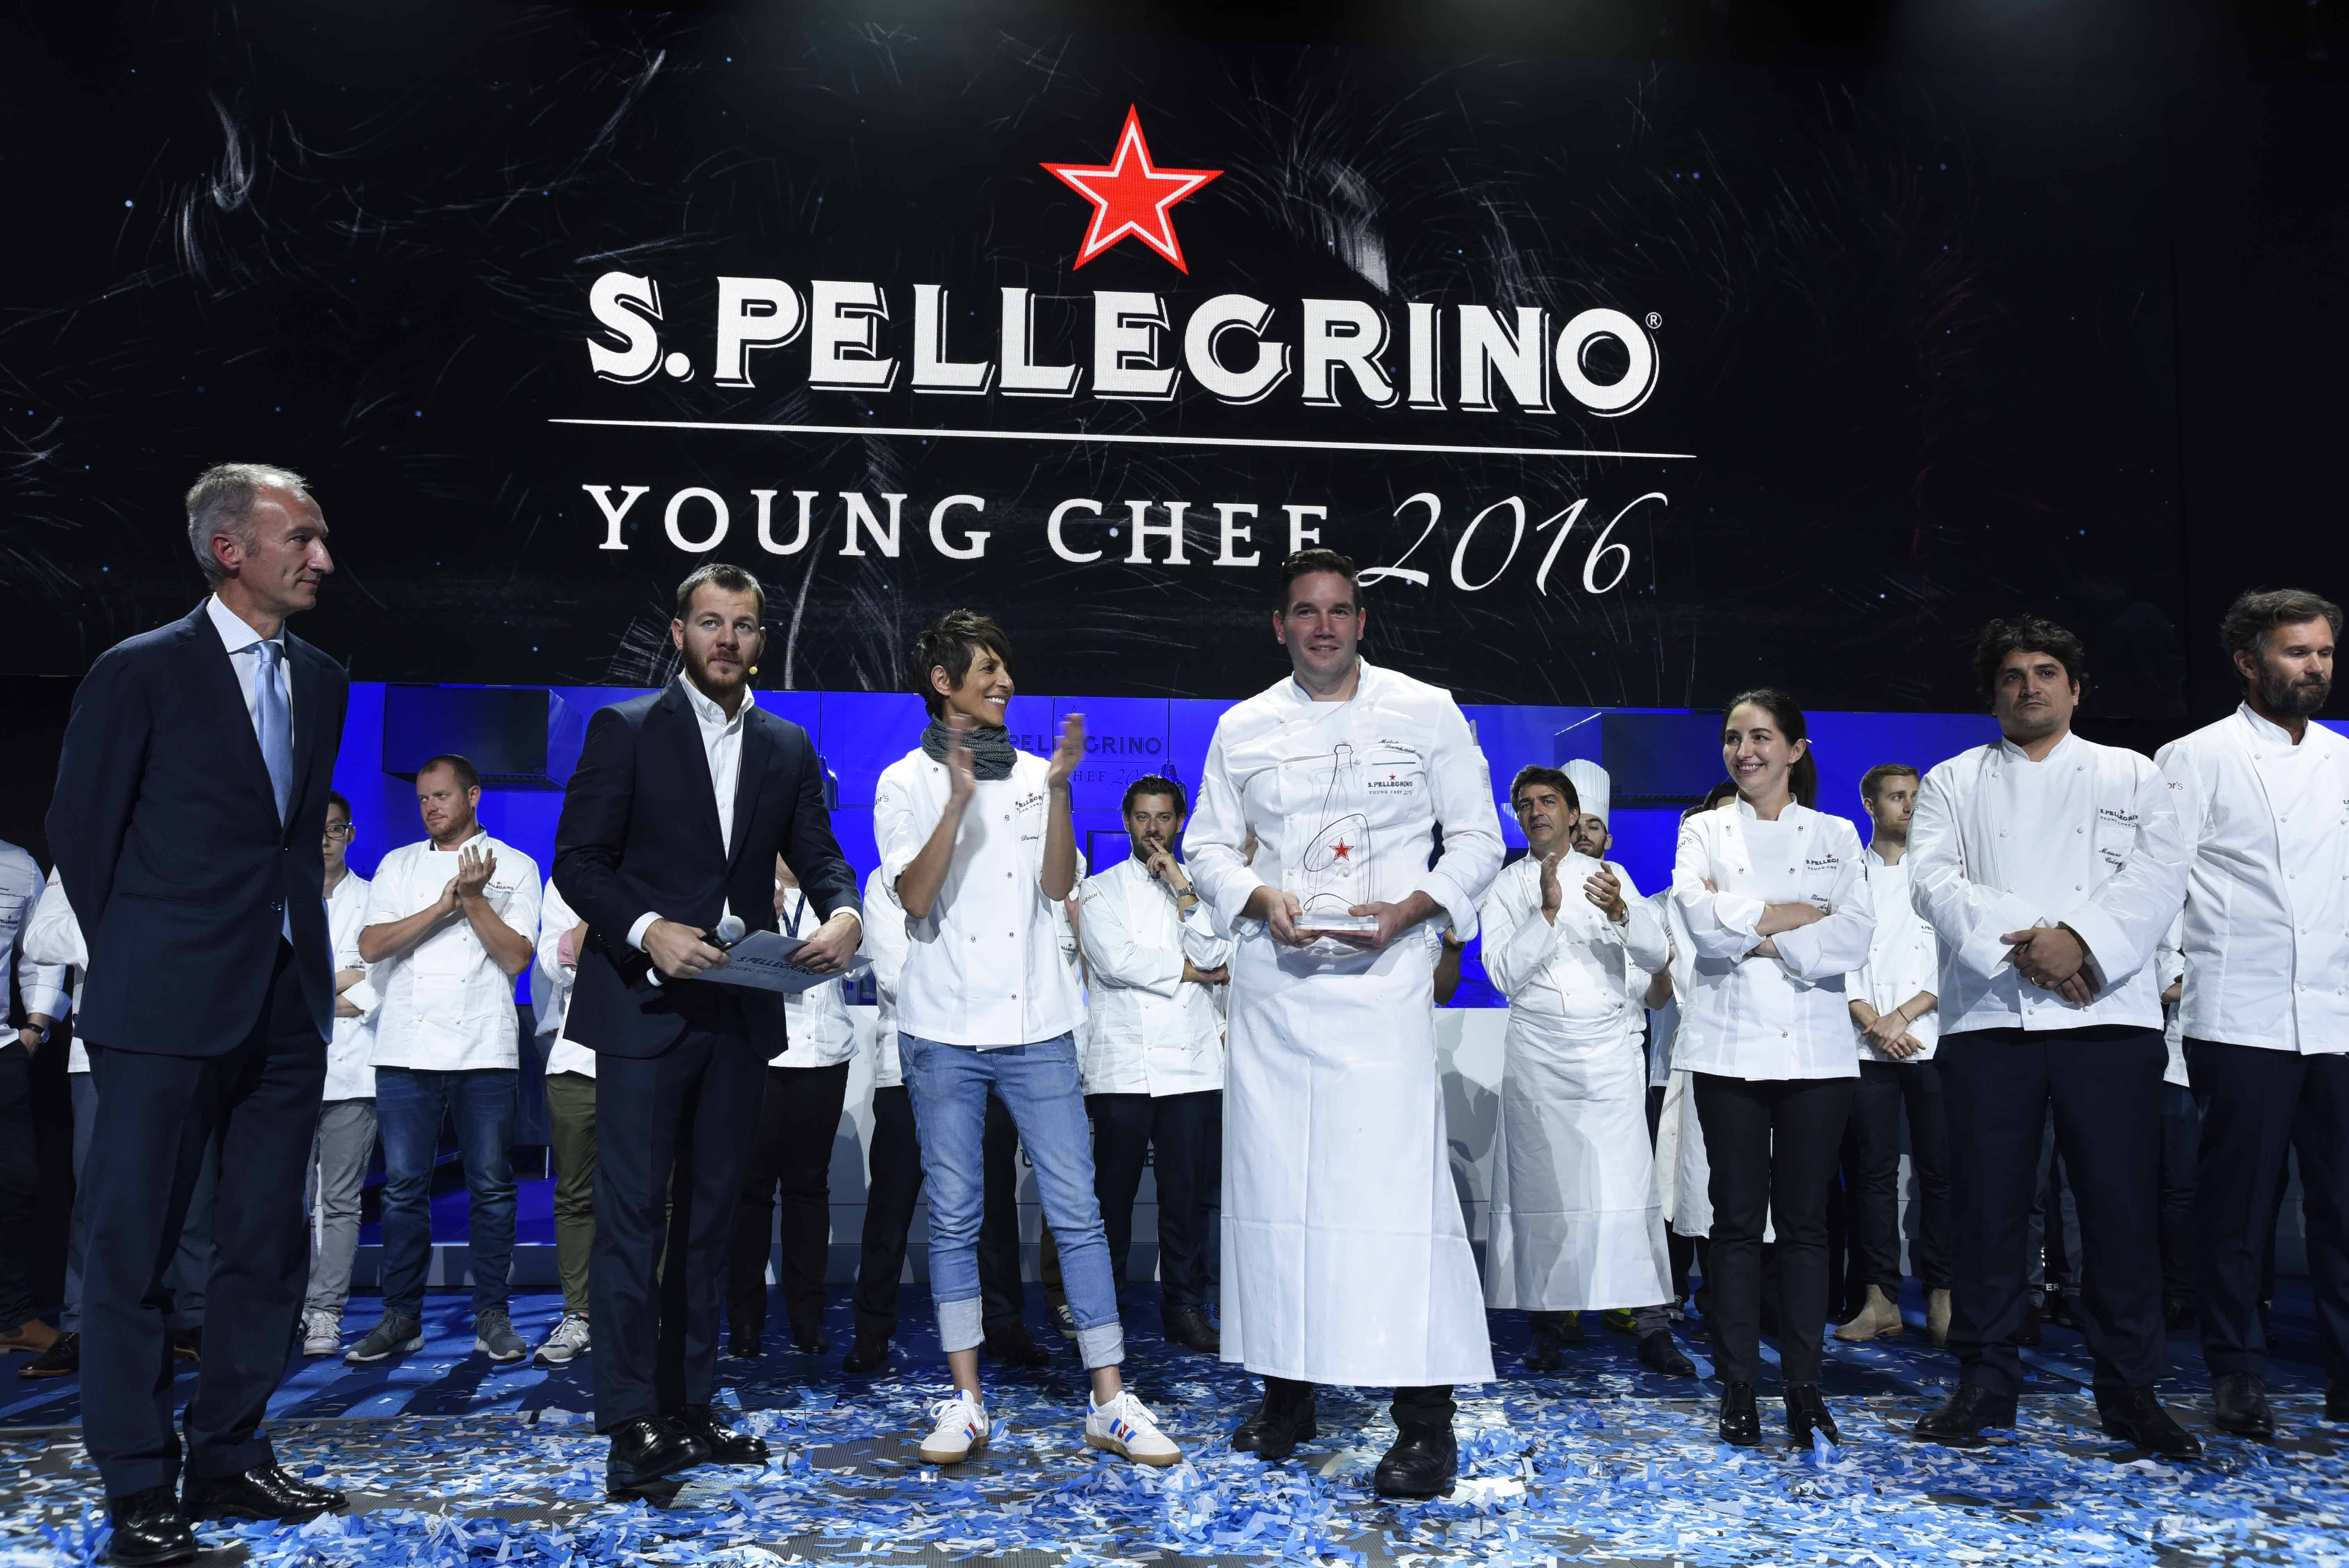 mitch-lienhard-usa-s-pellegrino-young-chef-2016-winner_2-2